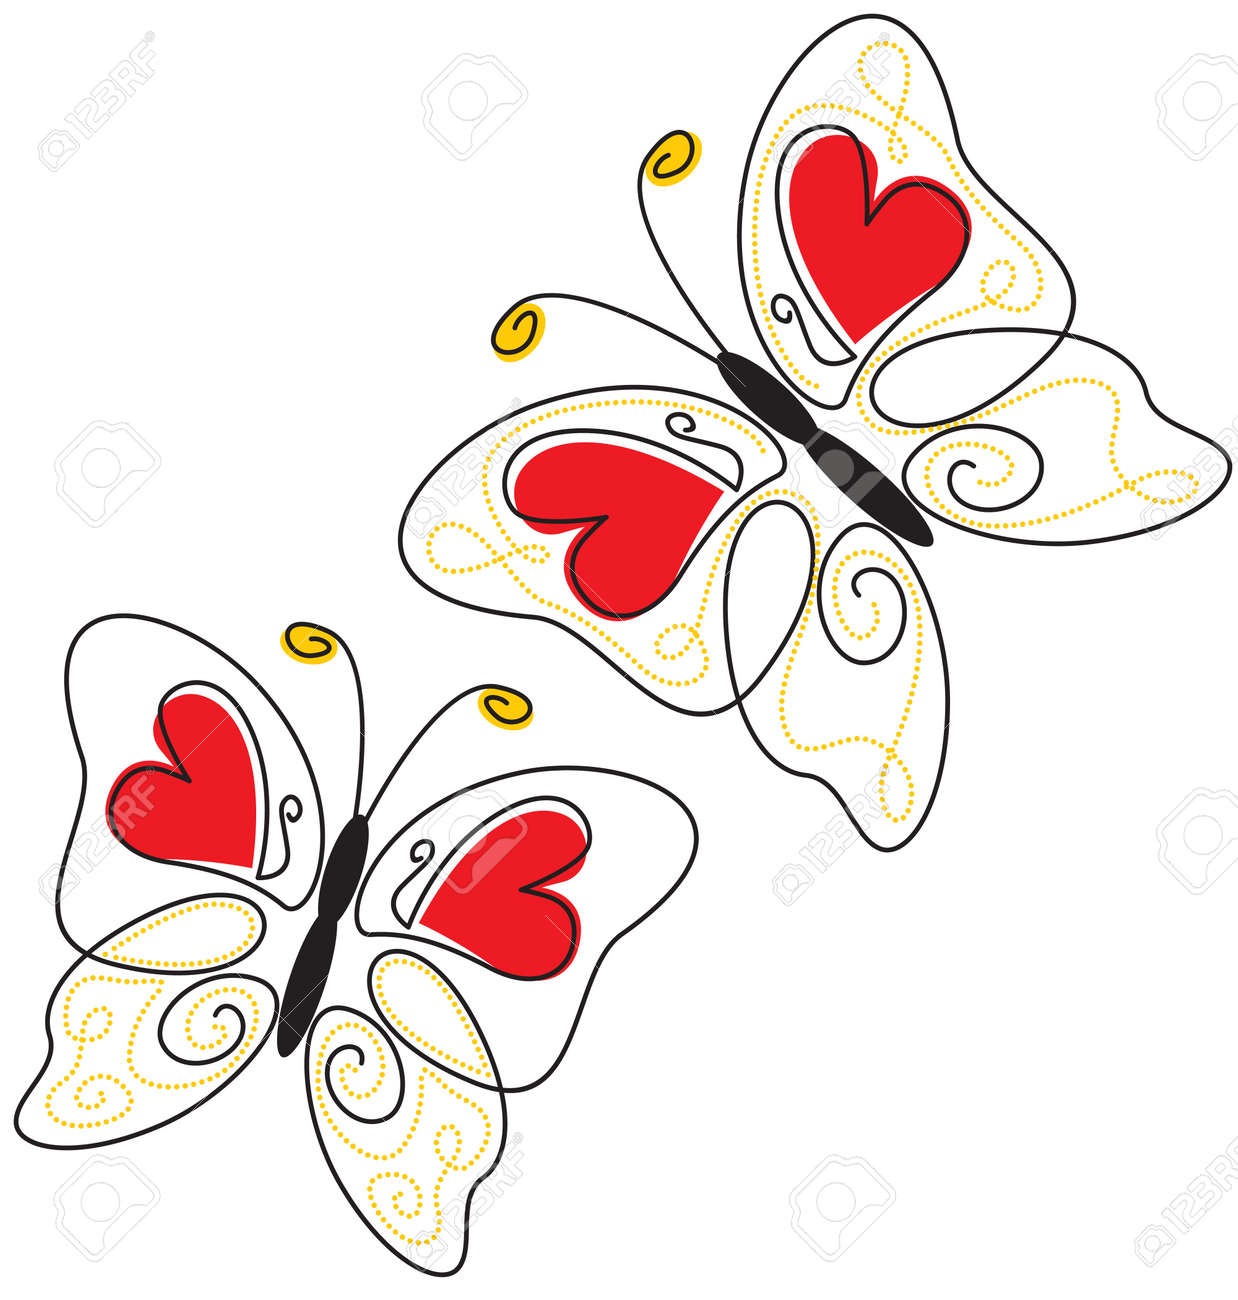 Contour Butterfly with hearts and beads on the wings Stock Vector - 14690565